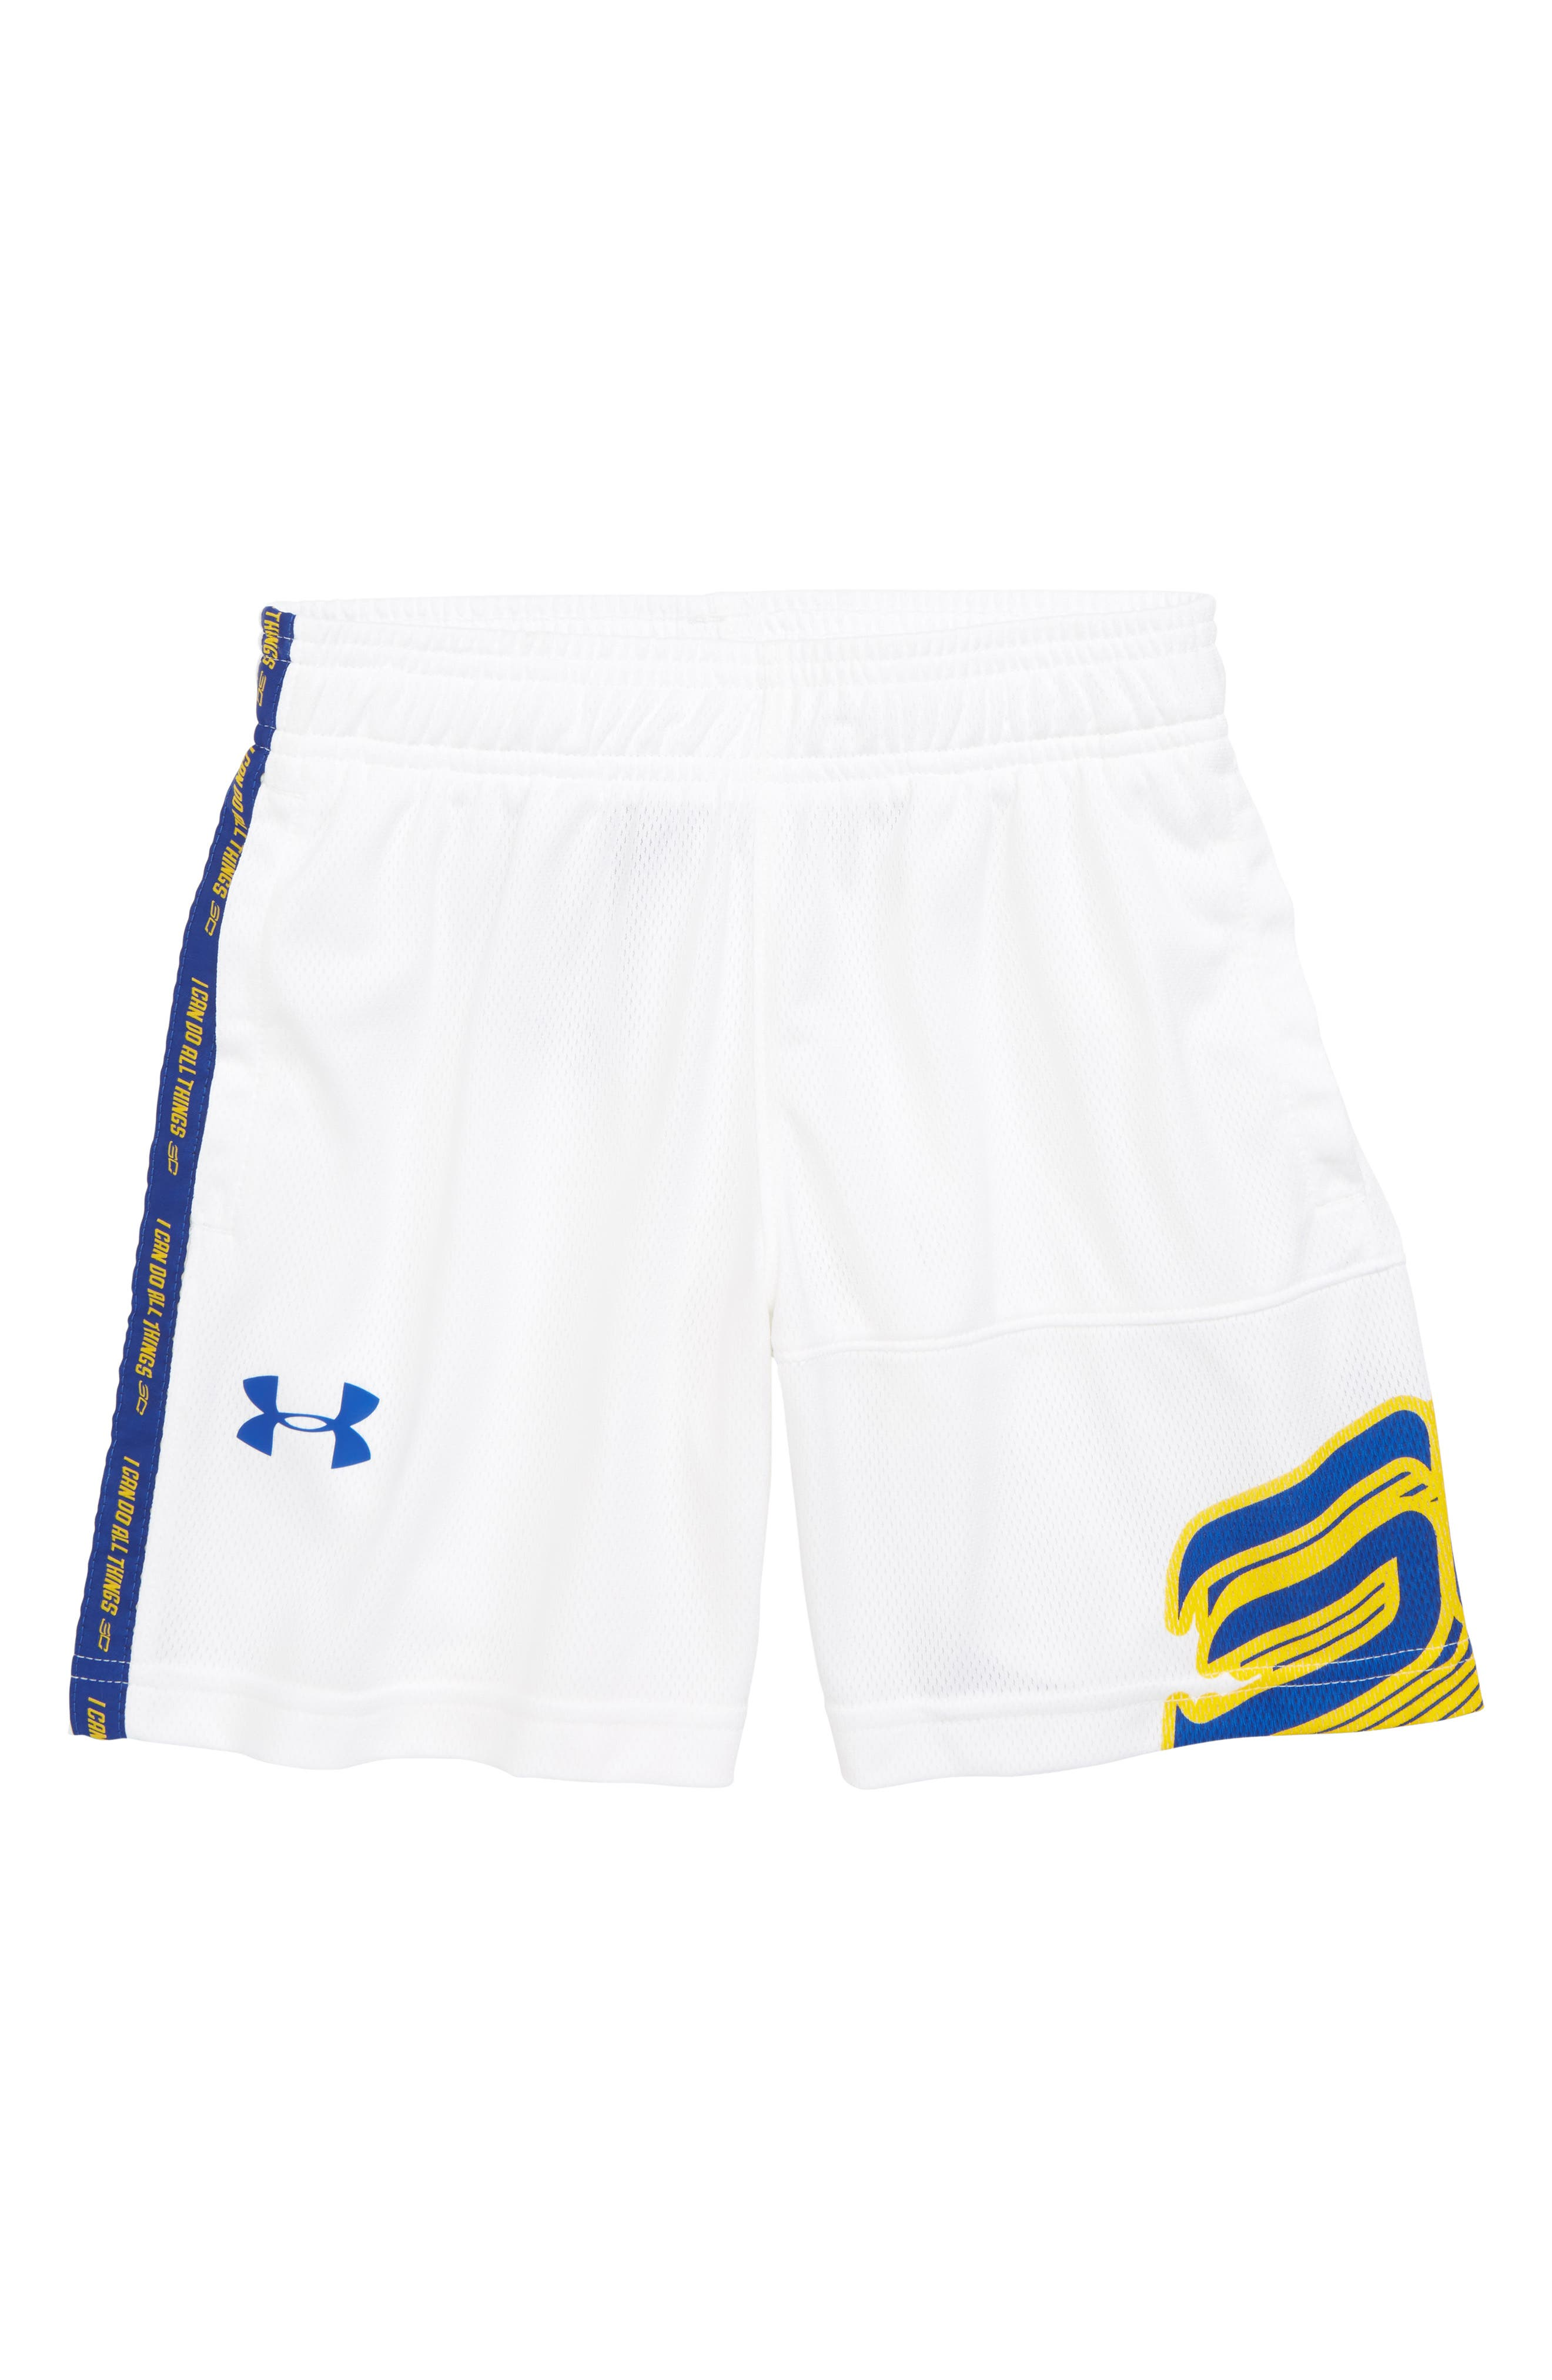 SC30 Basketball Shorts,                             Main thumbnail 1, color,                             101